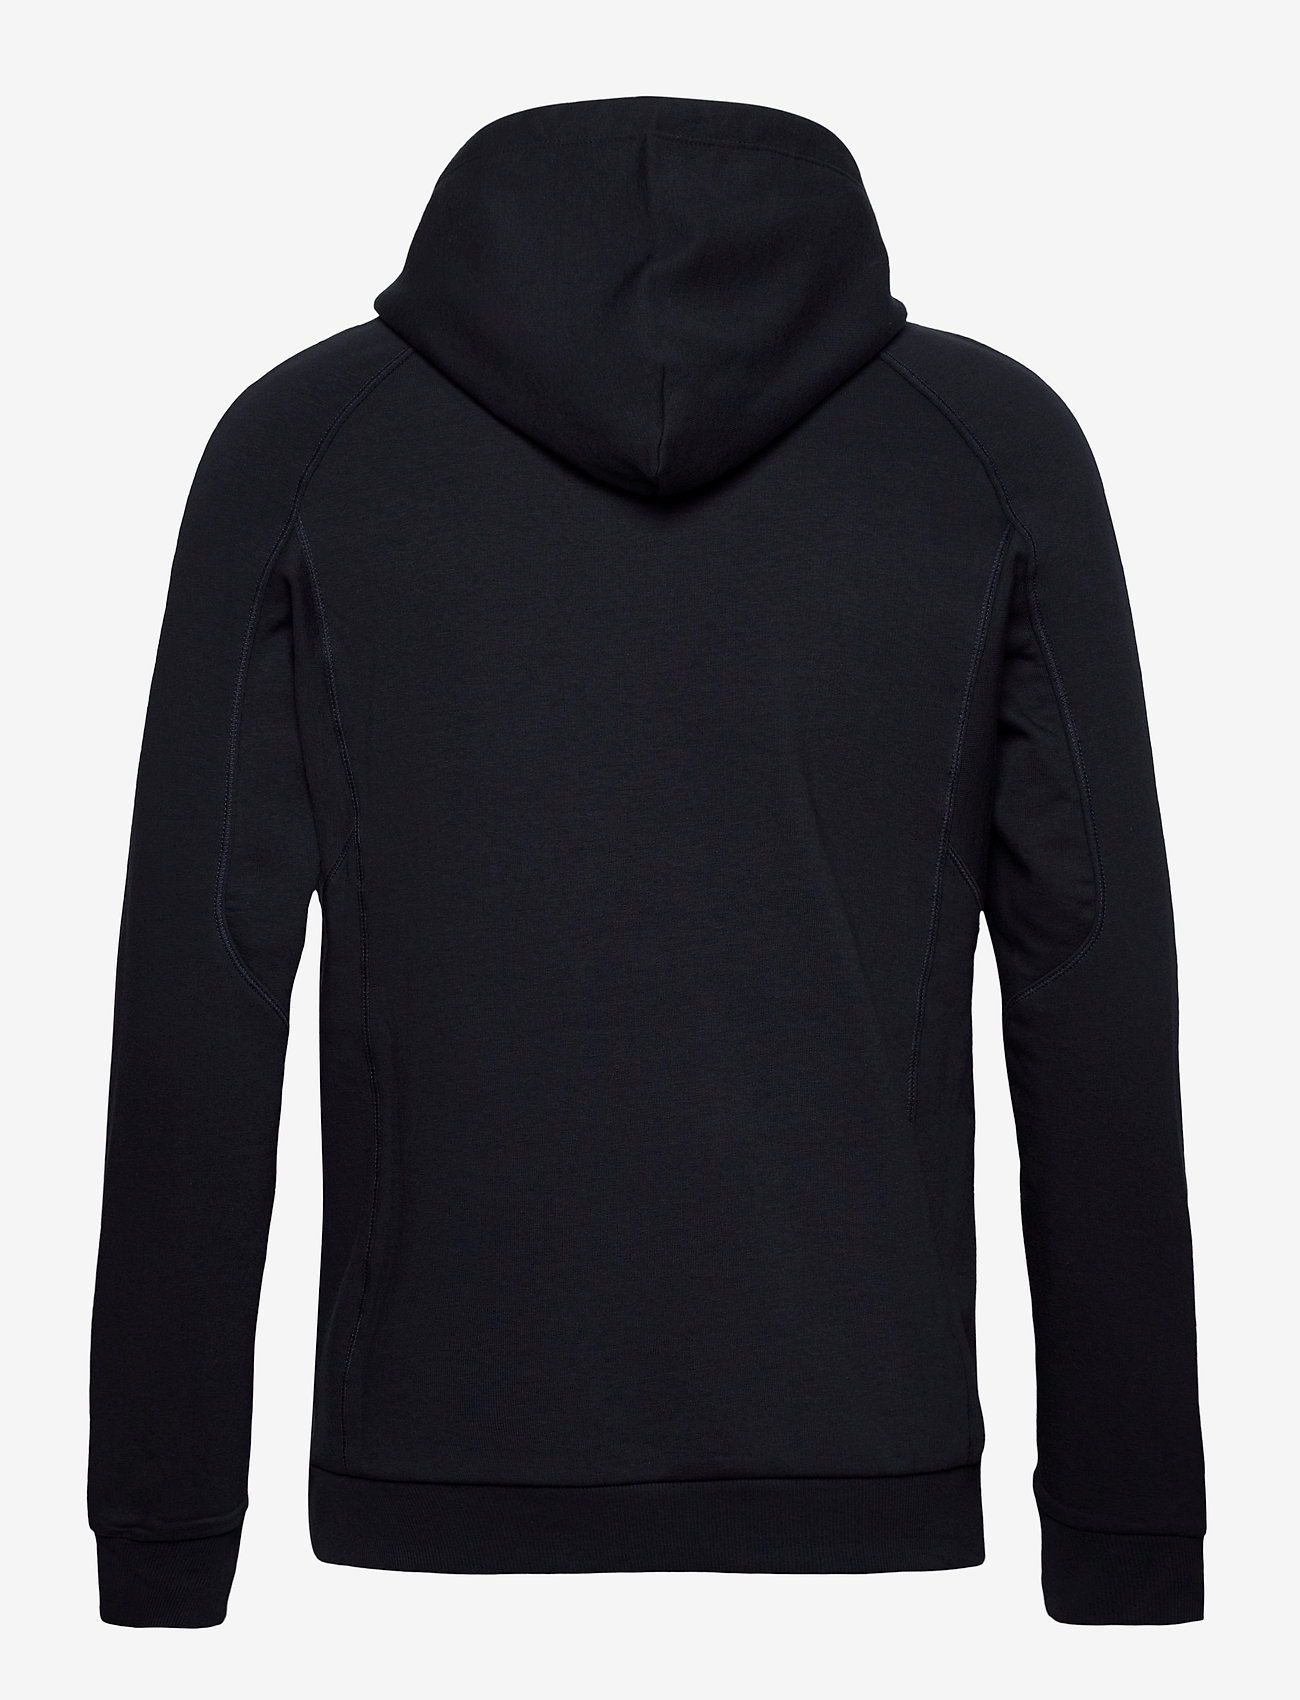 Peak Performance M Ground Hood Black - Sweatshirts BLUE SHADOW - Menn Klær